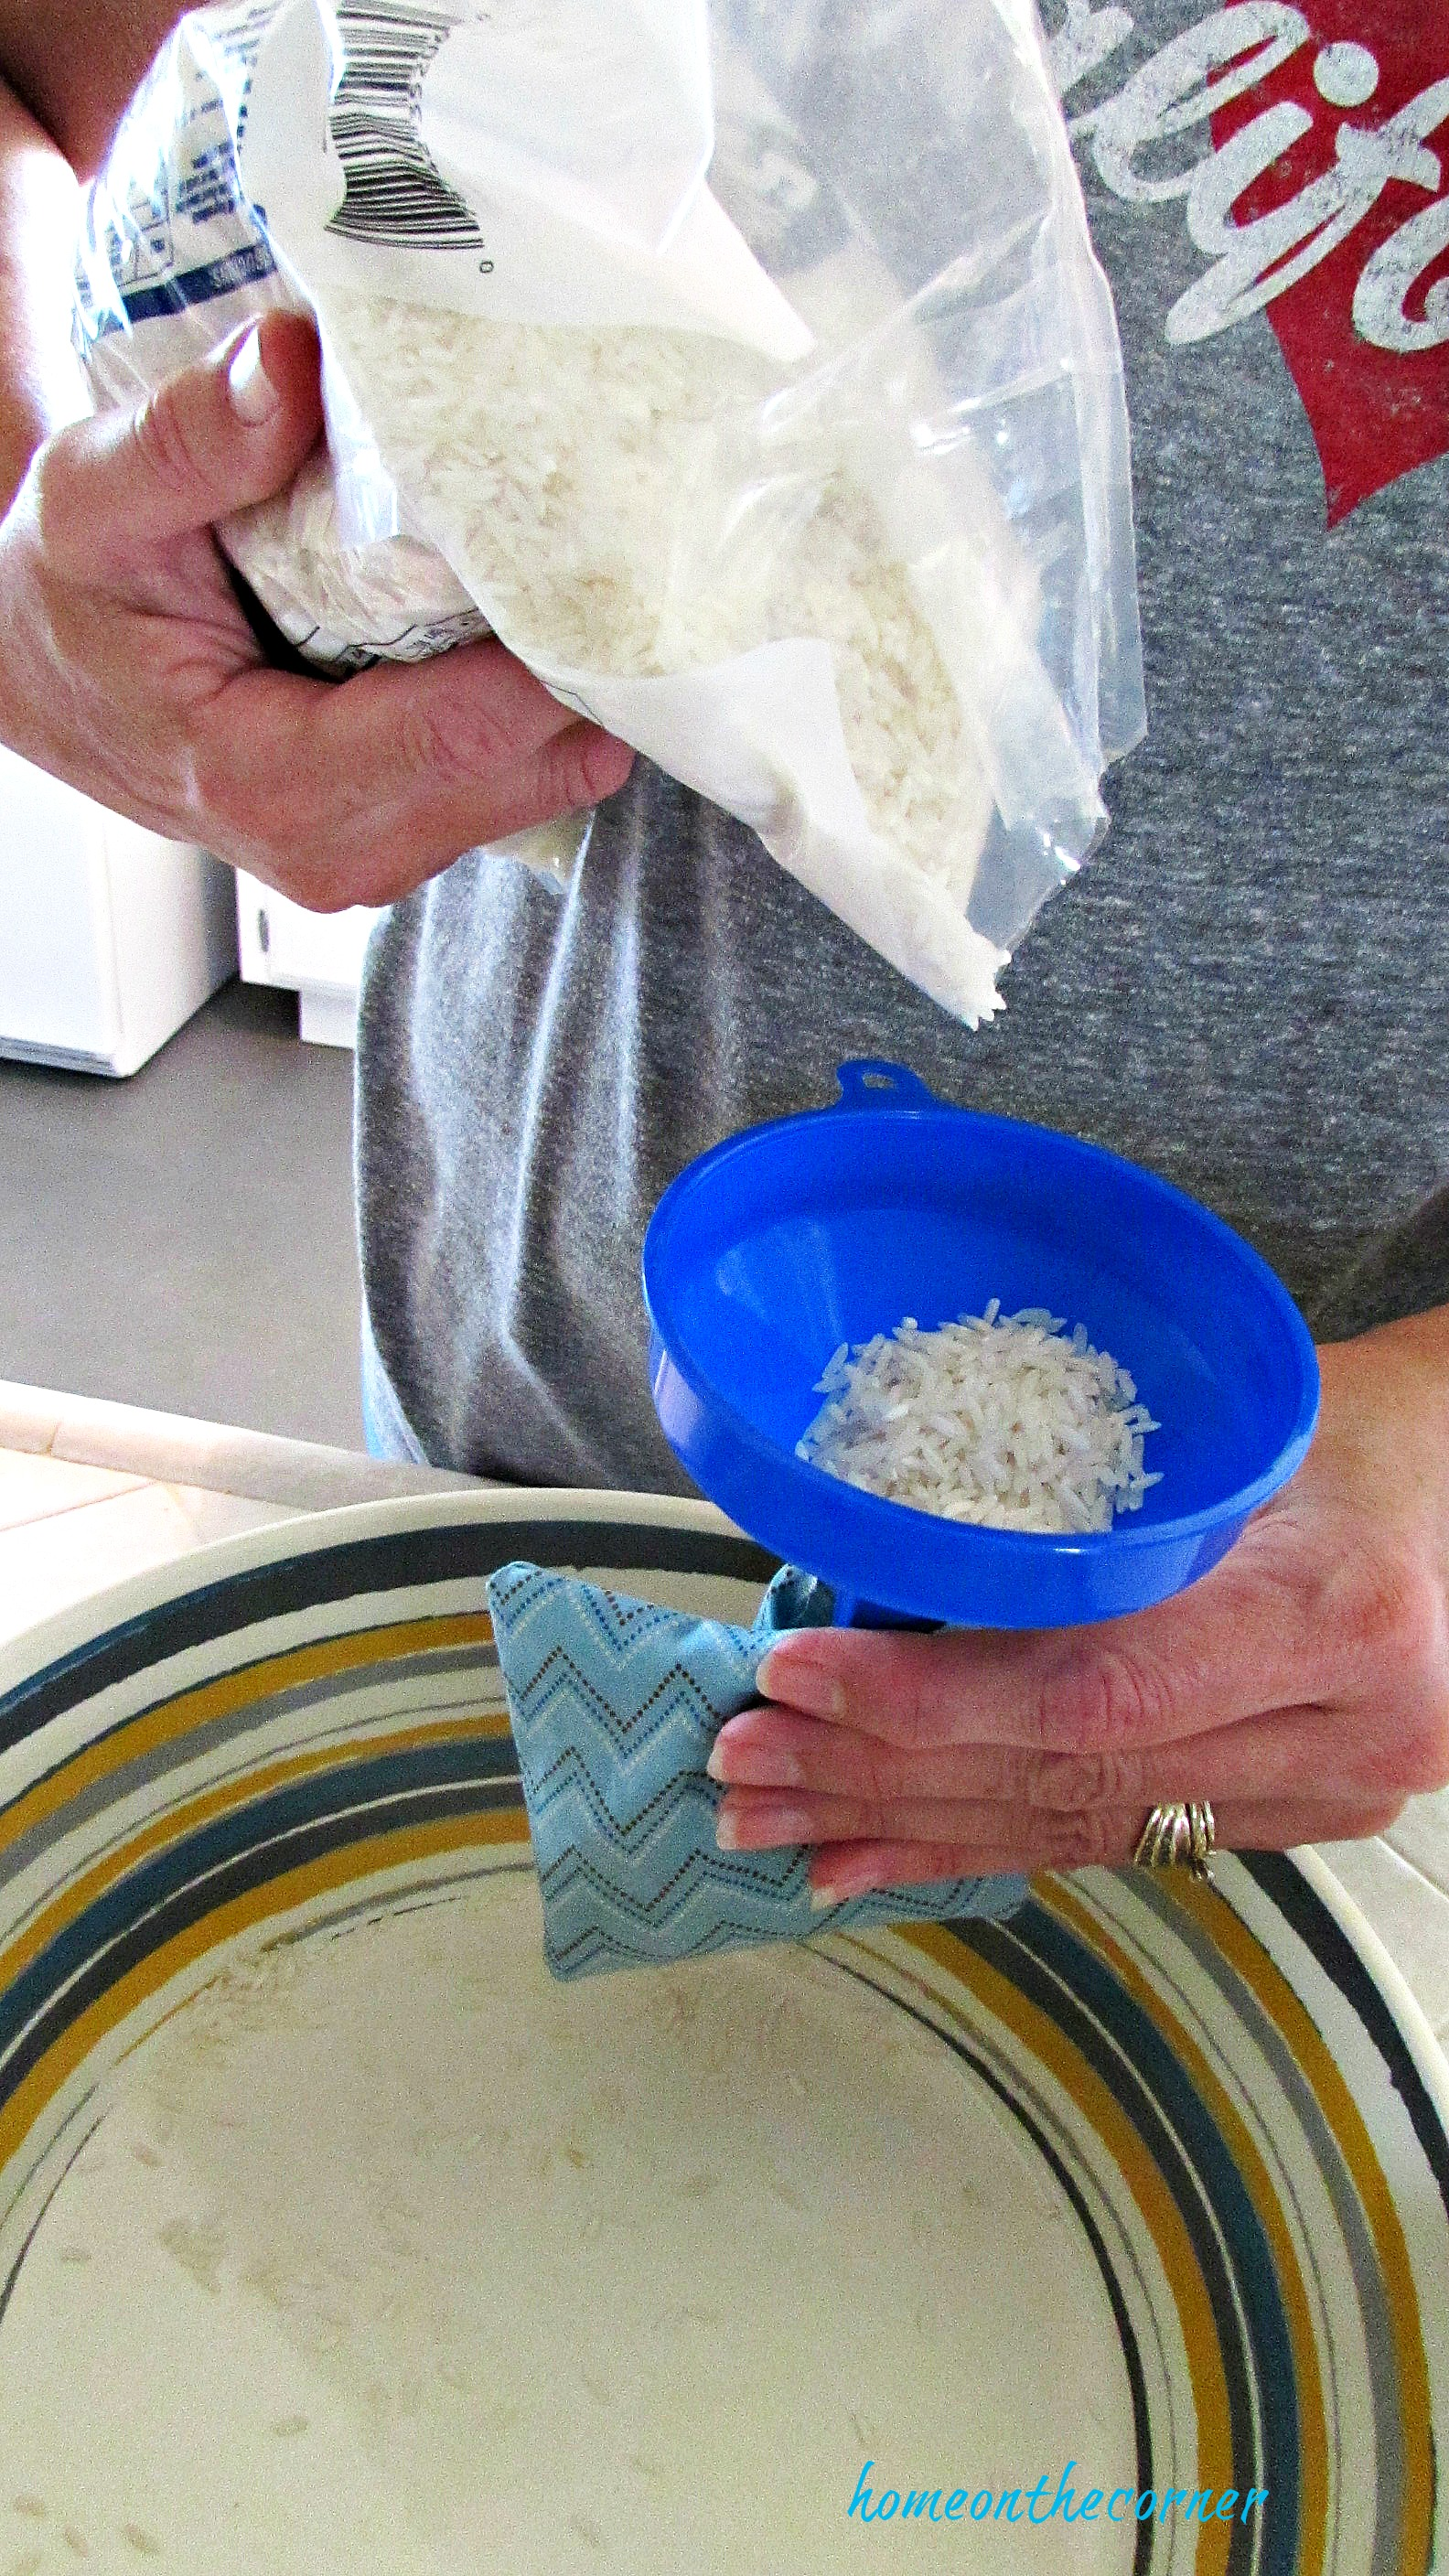 hand warmer filling bag with rice